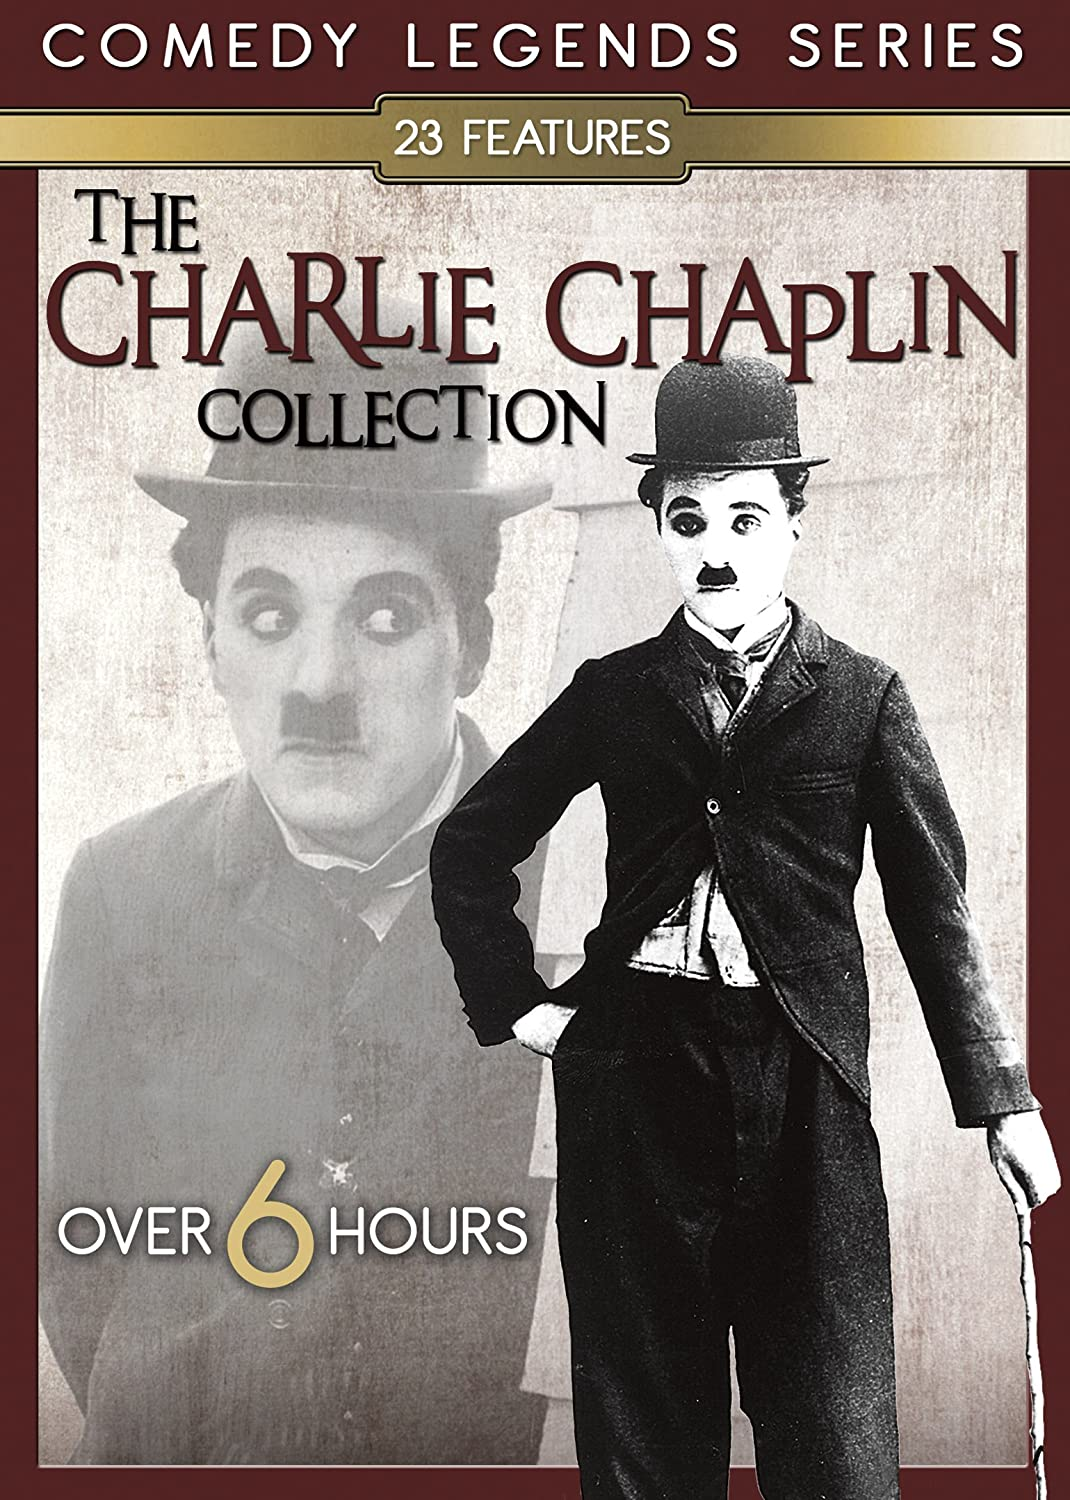 Charlie Chaplin Vol. 1 - 23 Features!